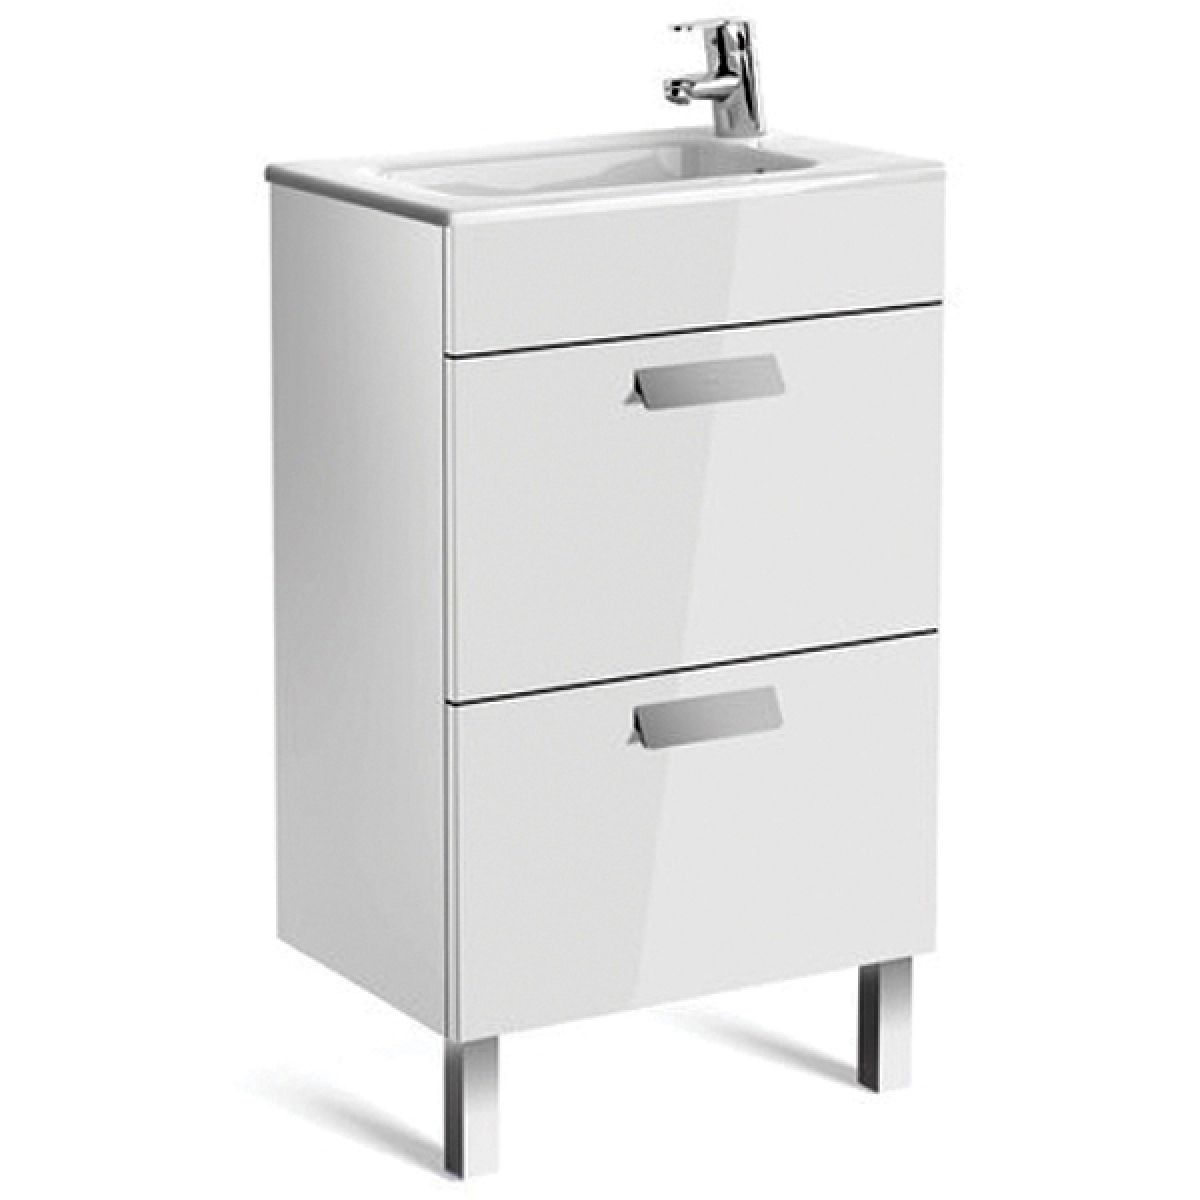 ... Roca Debba Compact 2 Drawer Vanity Unit With Basin ...